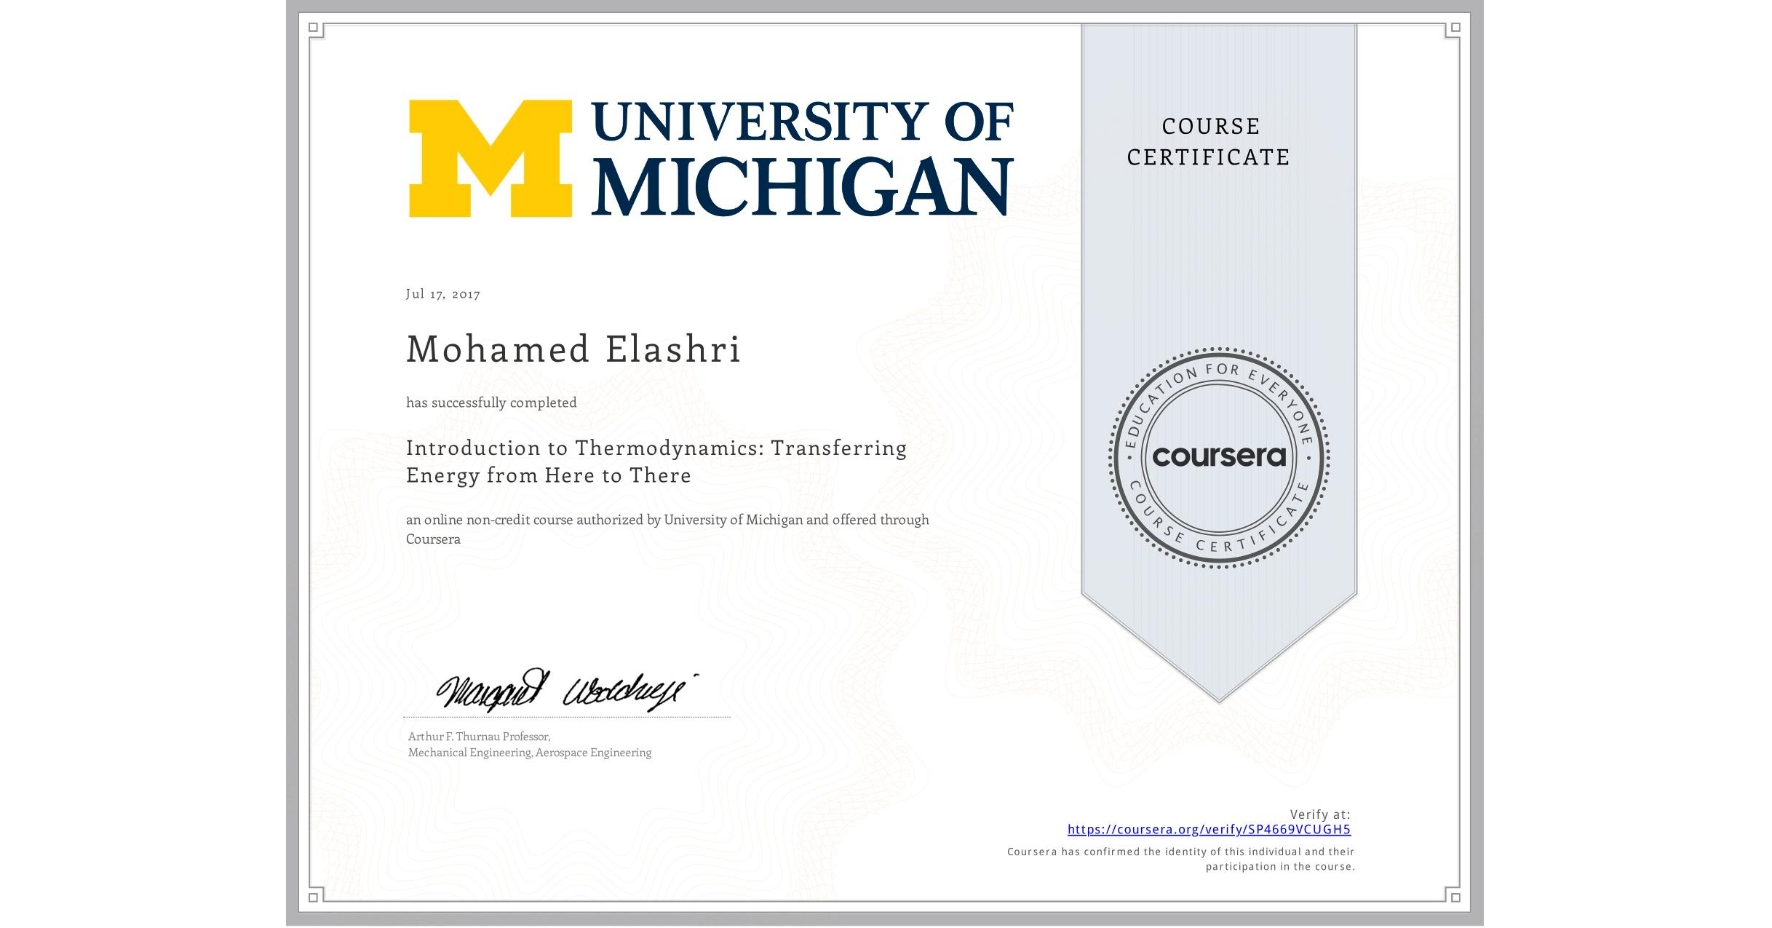 View certificate for Mohamed Elashri, Introduction to Thermodynamics: Transferring Energy from Here to There, an online non-credit course authorized by University of Michigan and offered through Coursera